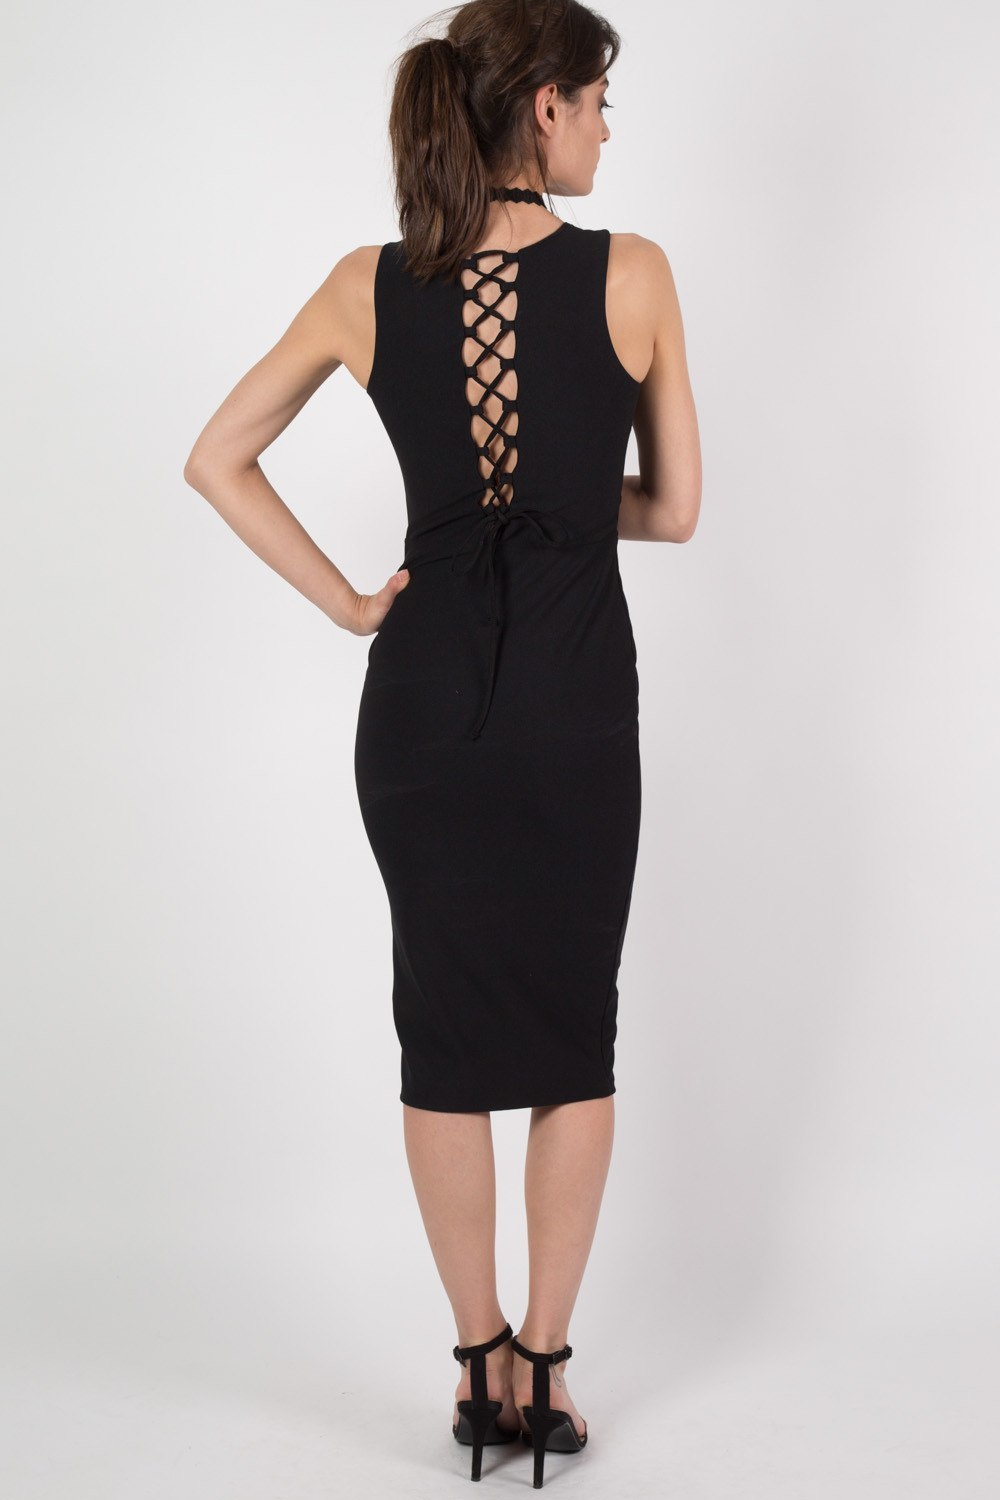 Deep V Front Lace Up Back Bodycon Midi Dress in Black MODEL BACK